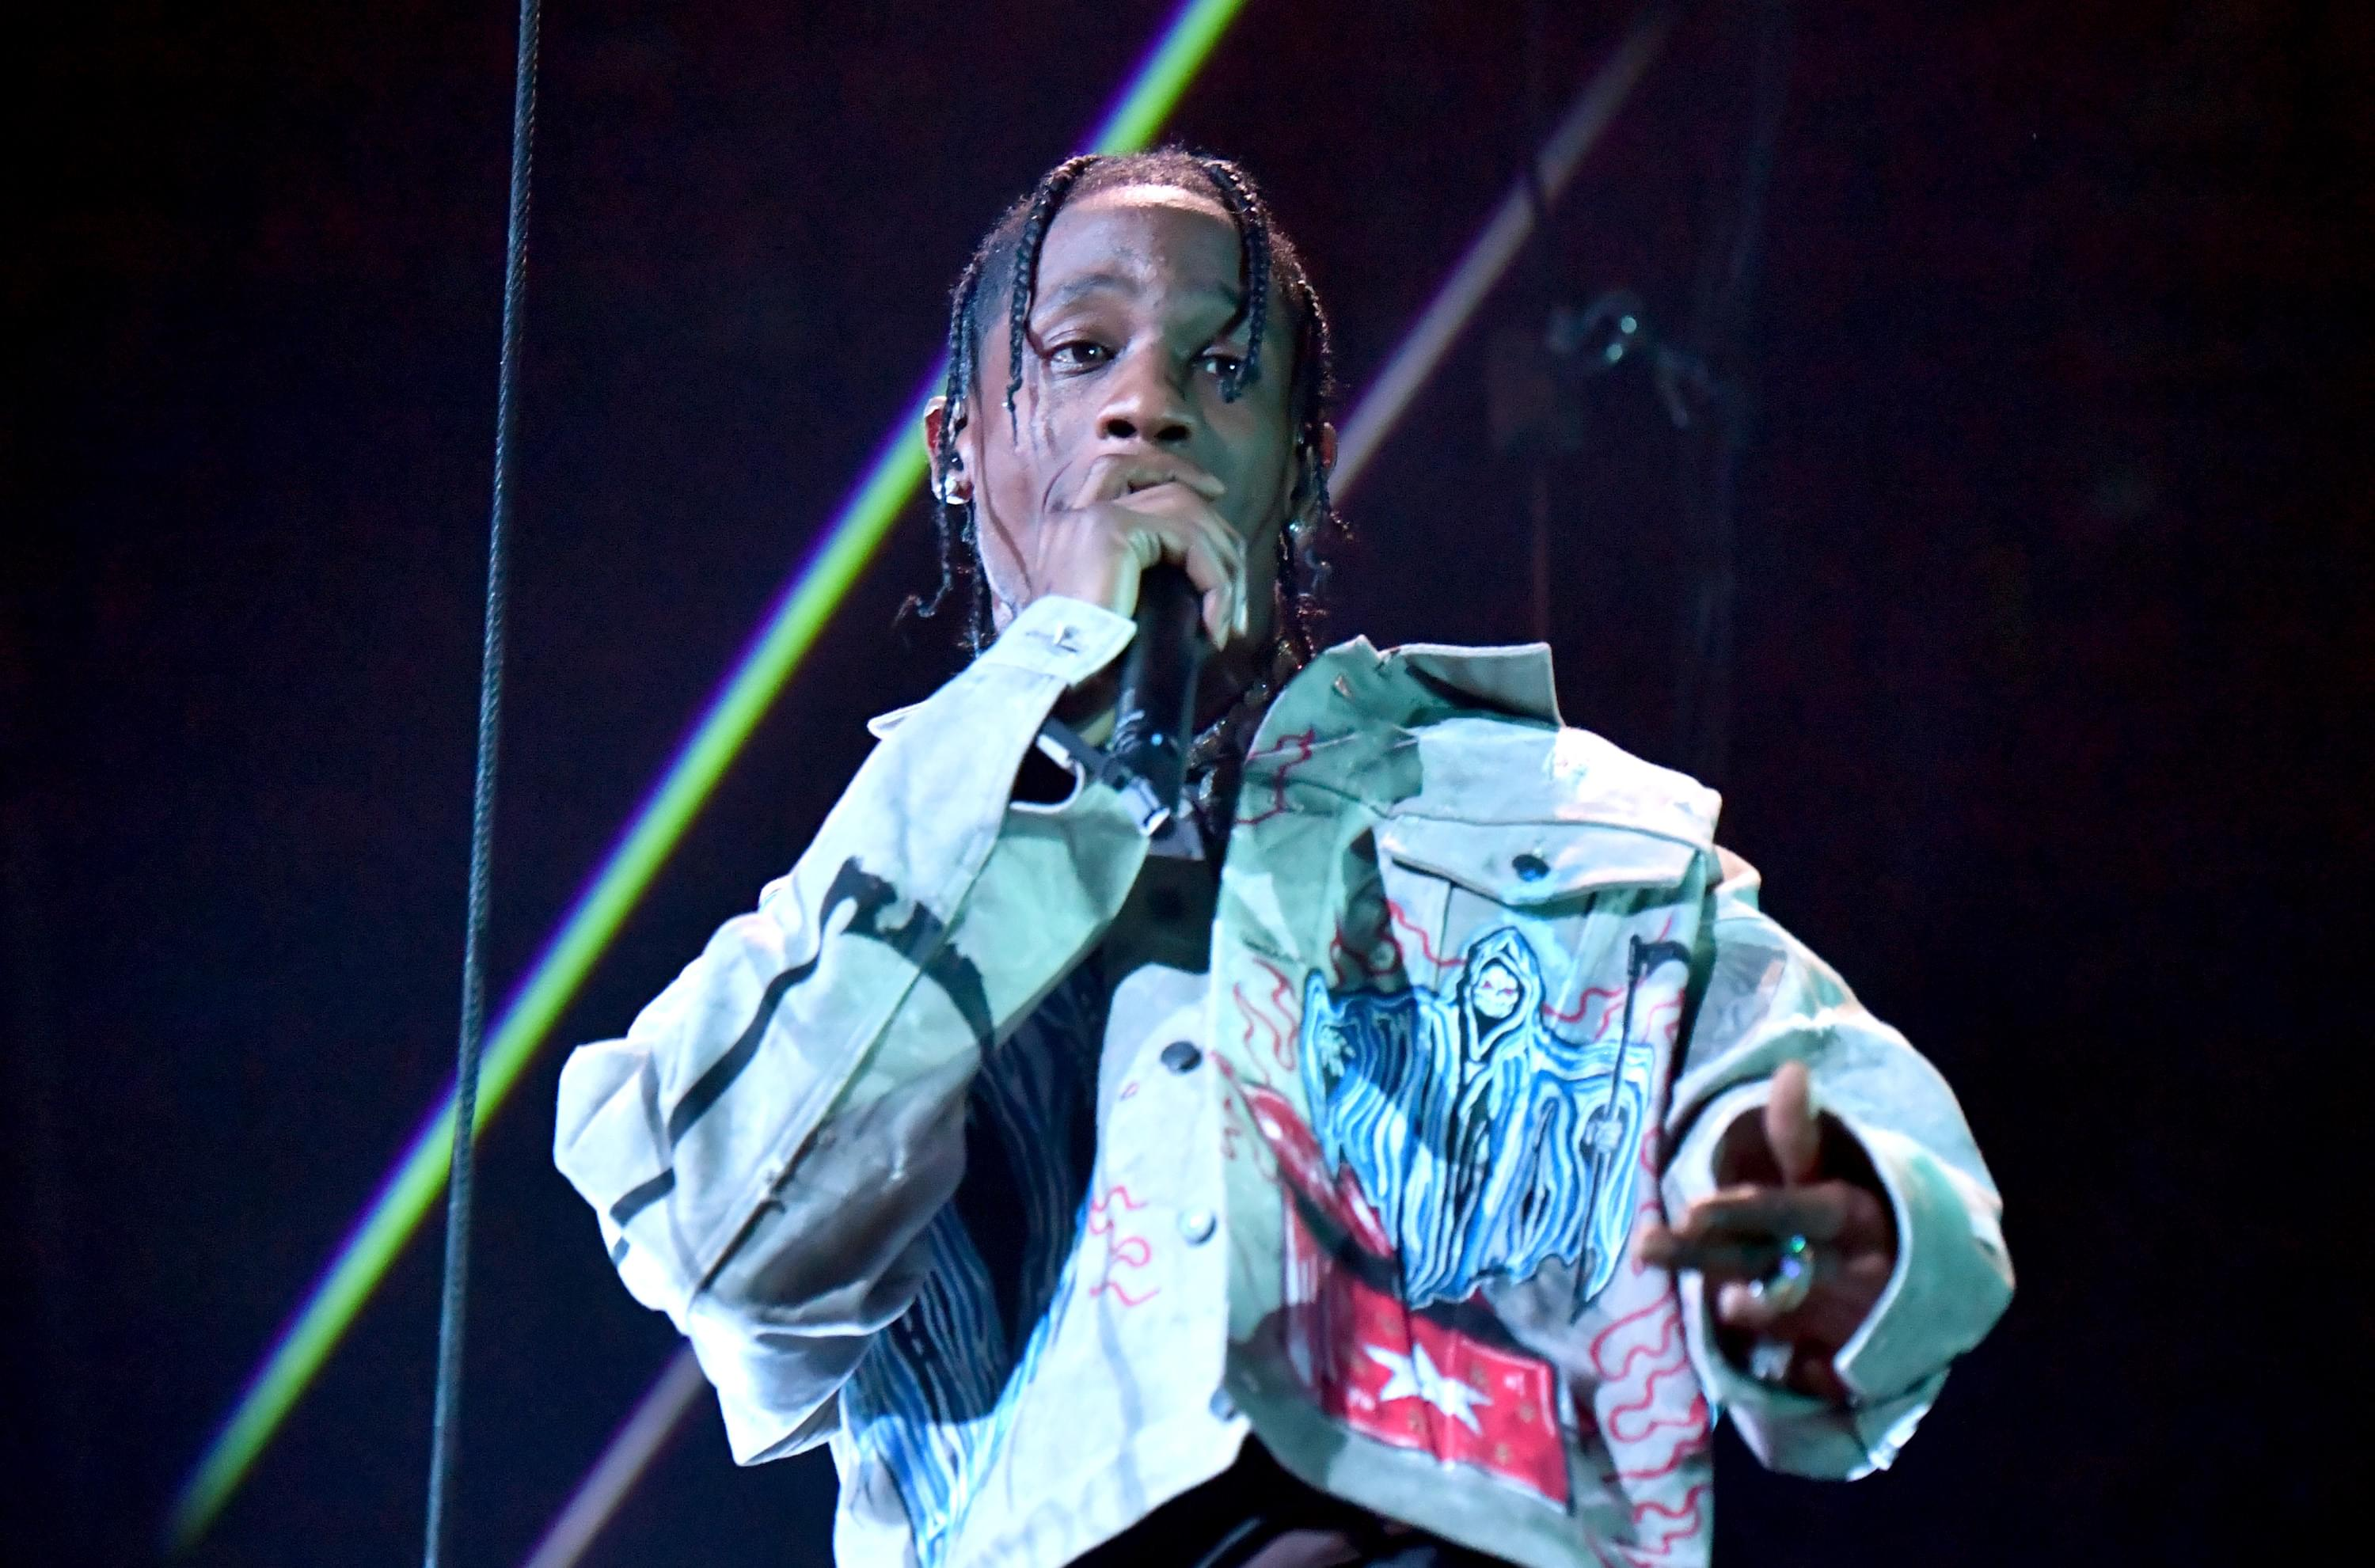 cali christmas artist travis scott set to release exclusive vinyl with fashion house ysl